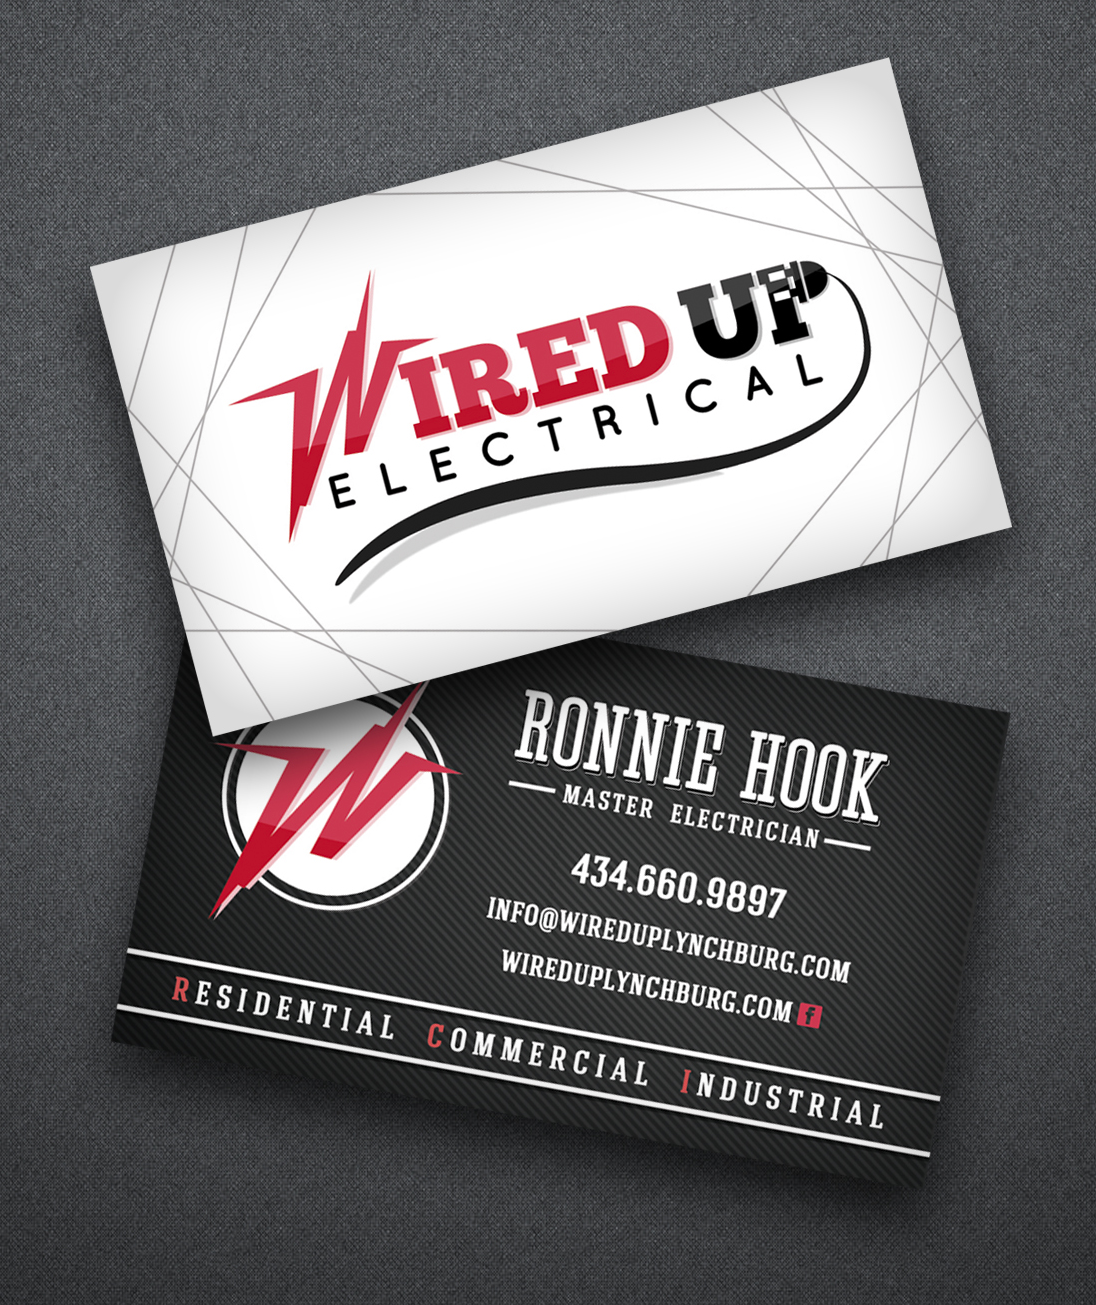 Designed business cards for an electrician. | design | Pinterest ...